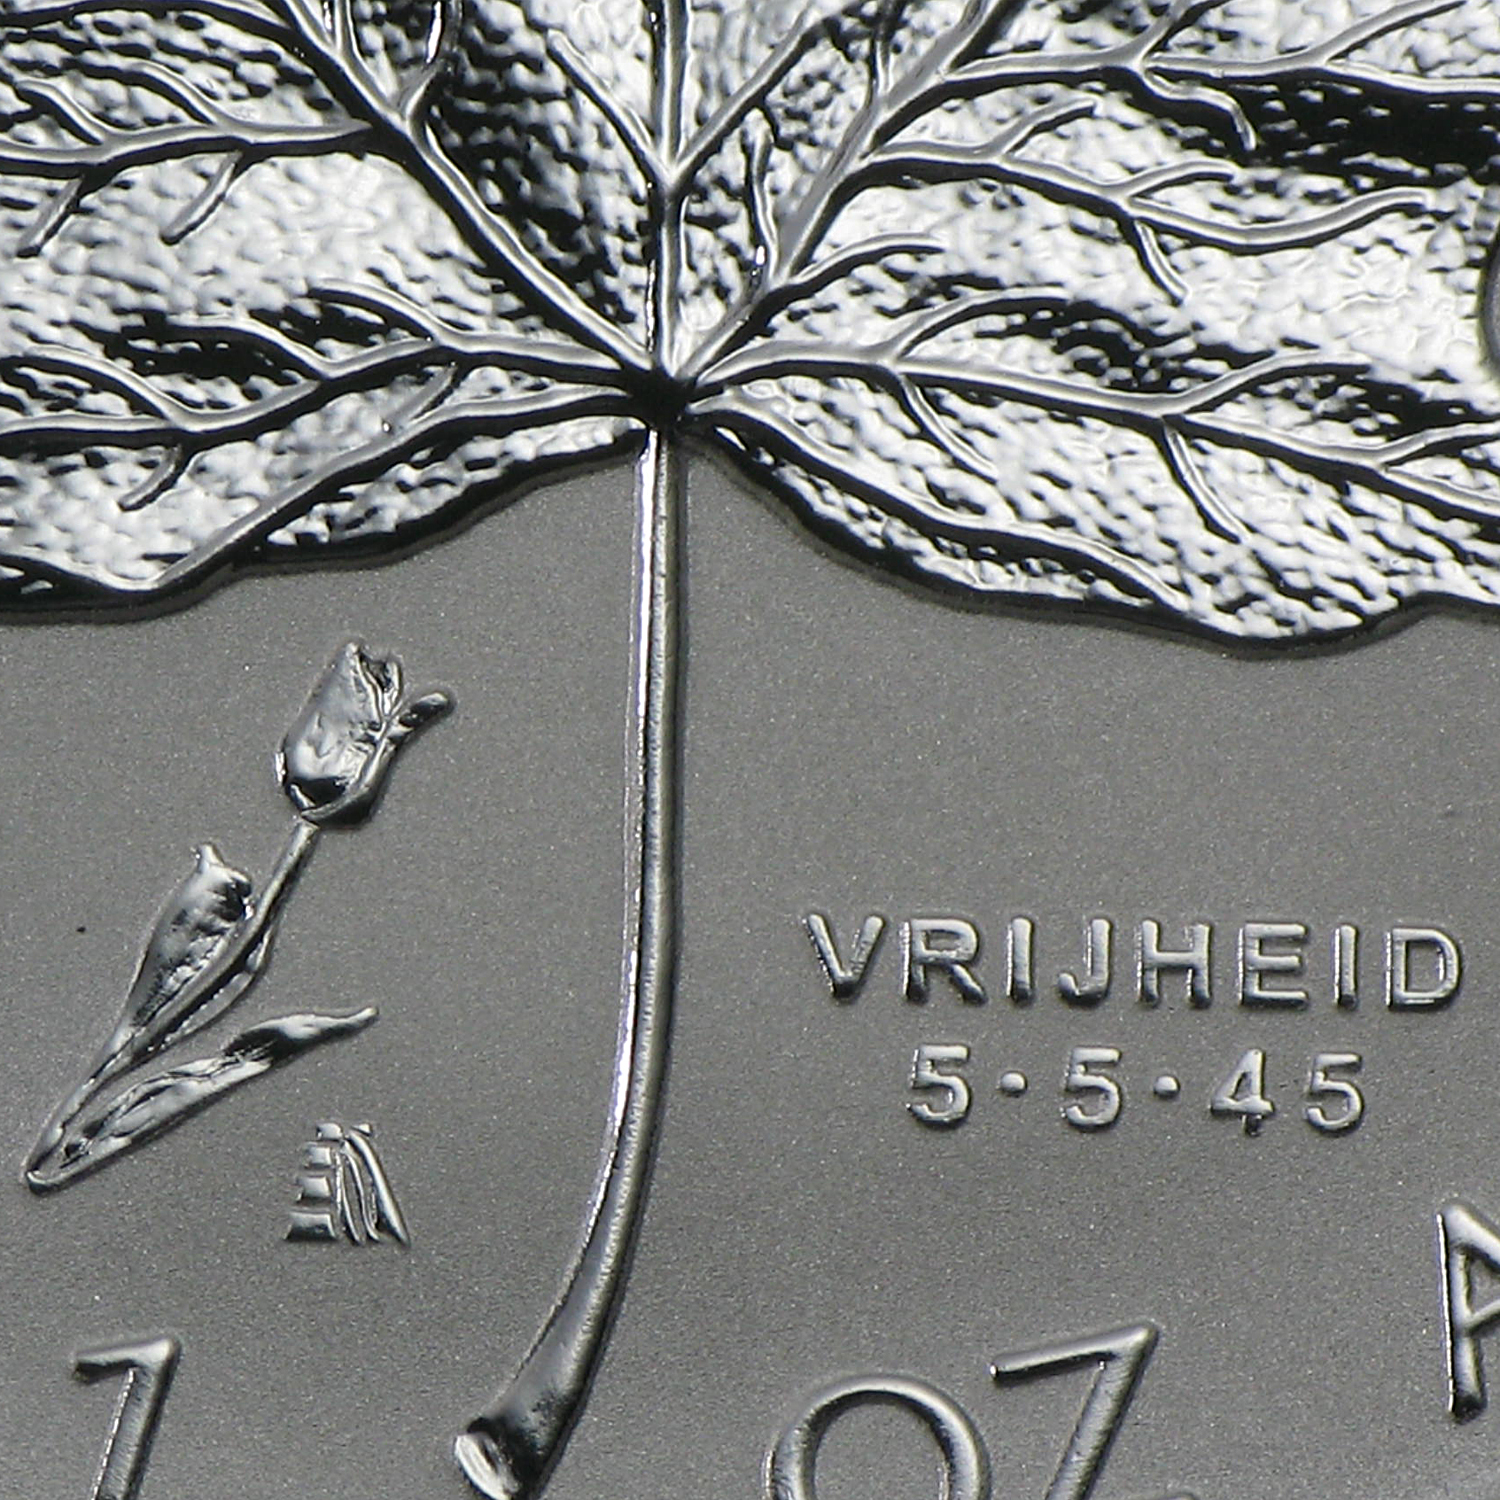 2005 1 oz Silver Canadian Maple Leaf - Freedom Tulip Privy Mark